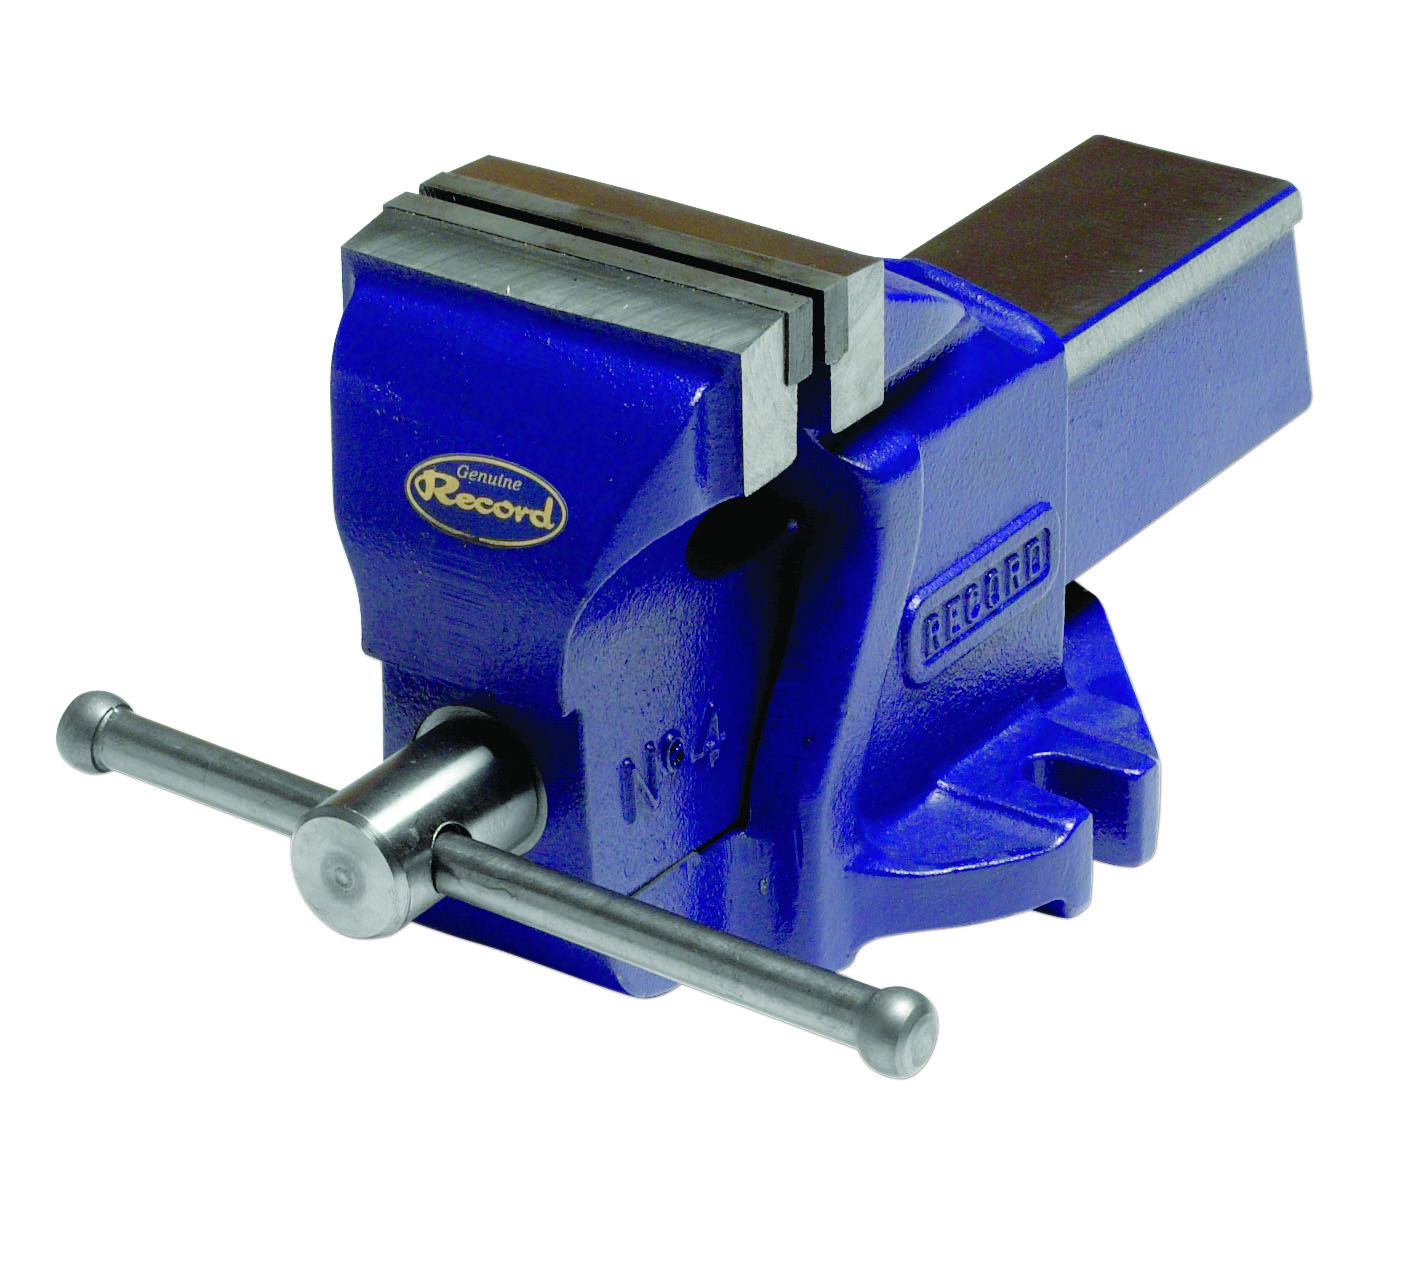 IRWIN T6 - Heavy Duty Mechanics Vice 6-inch